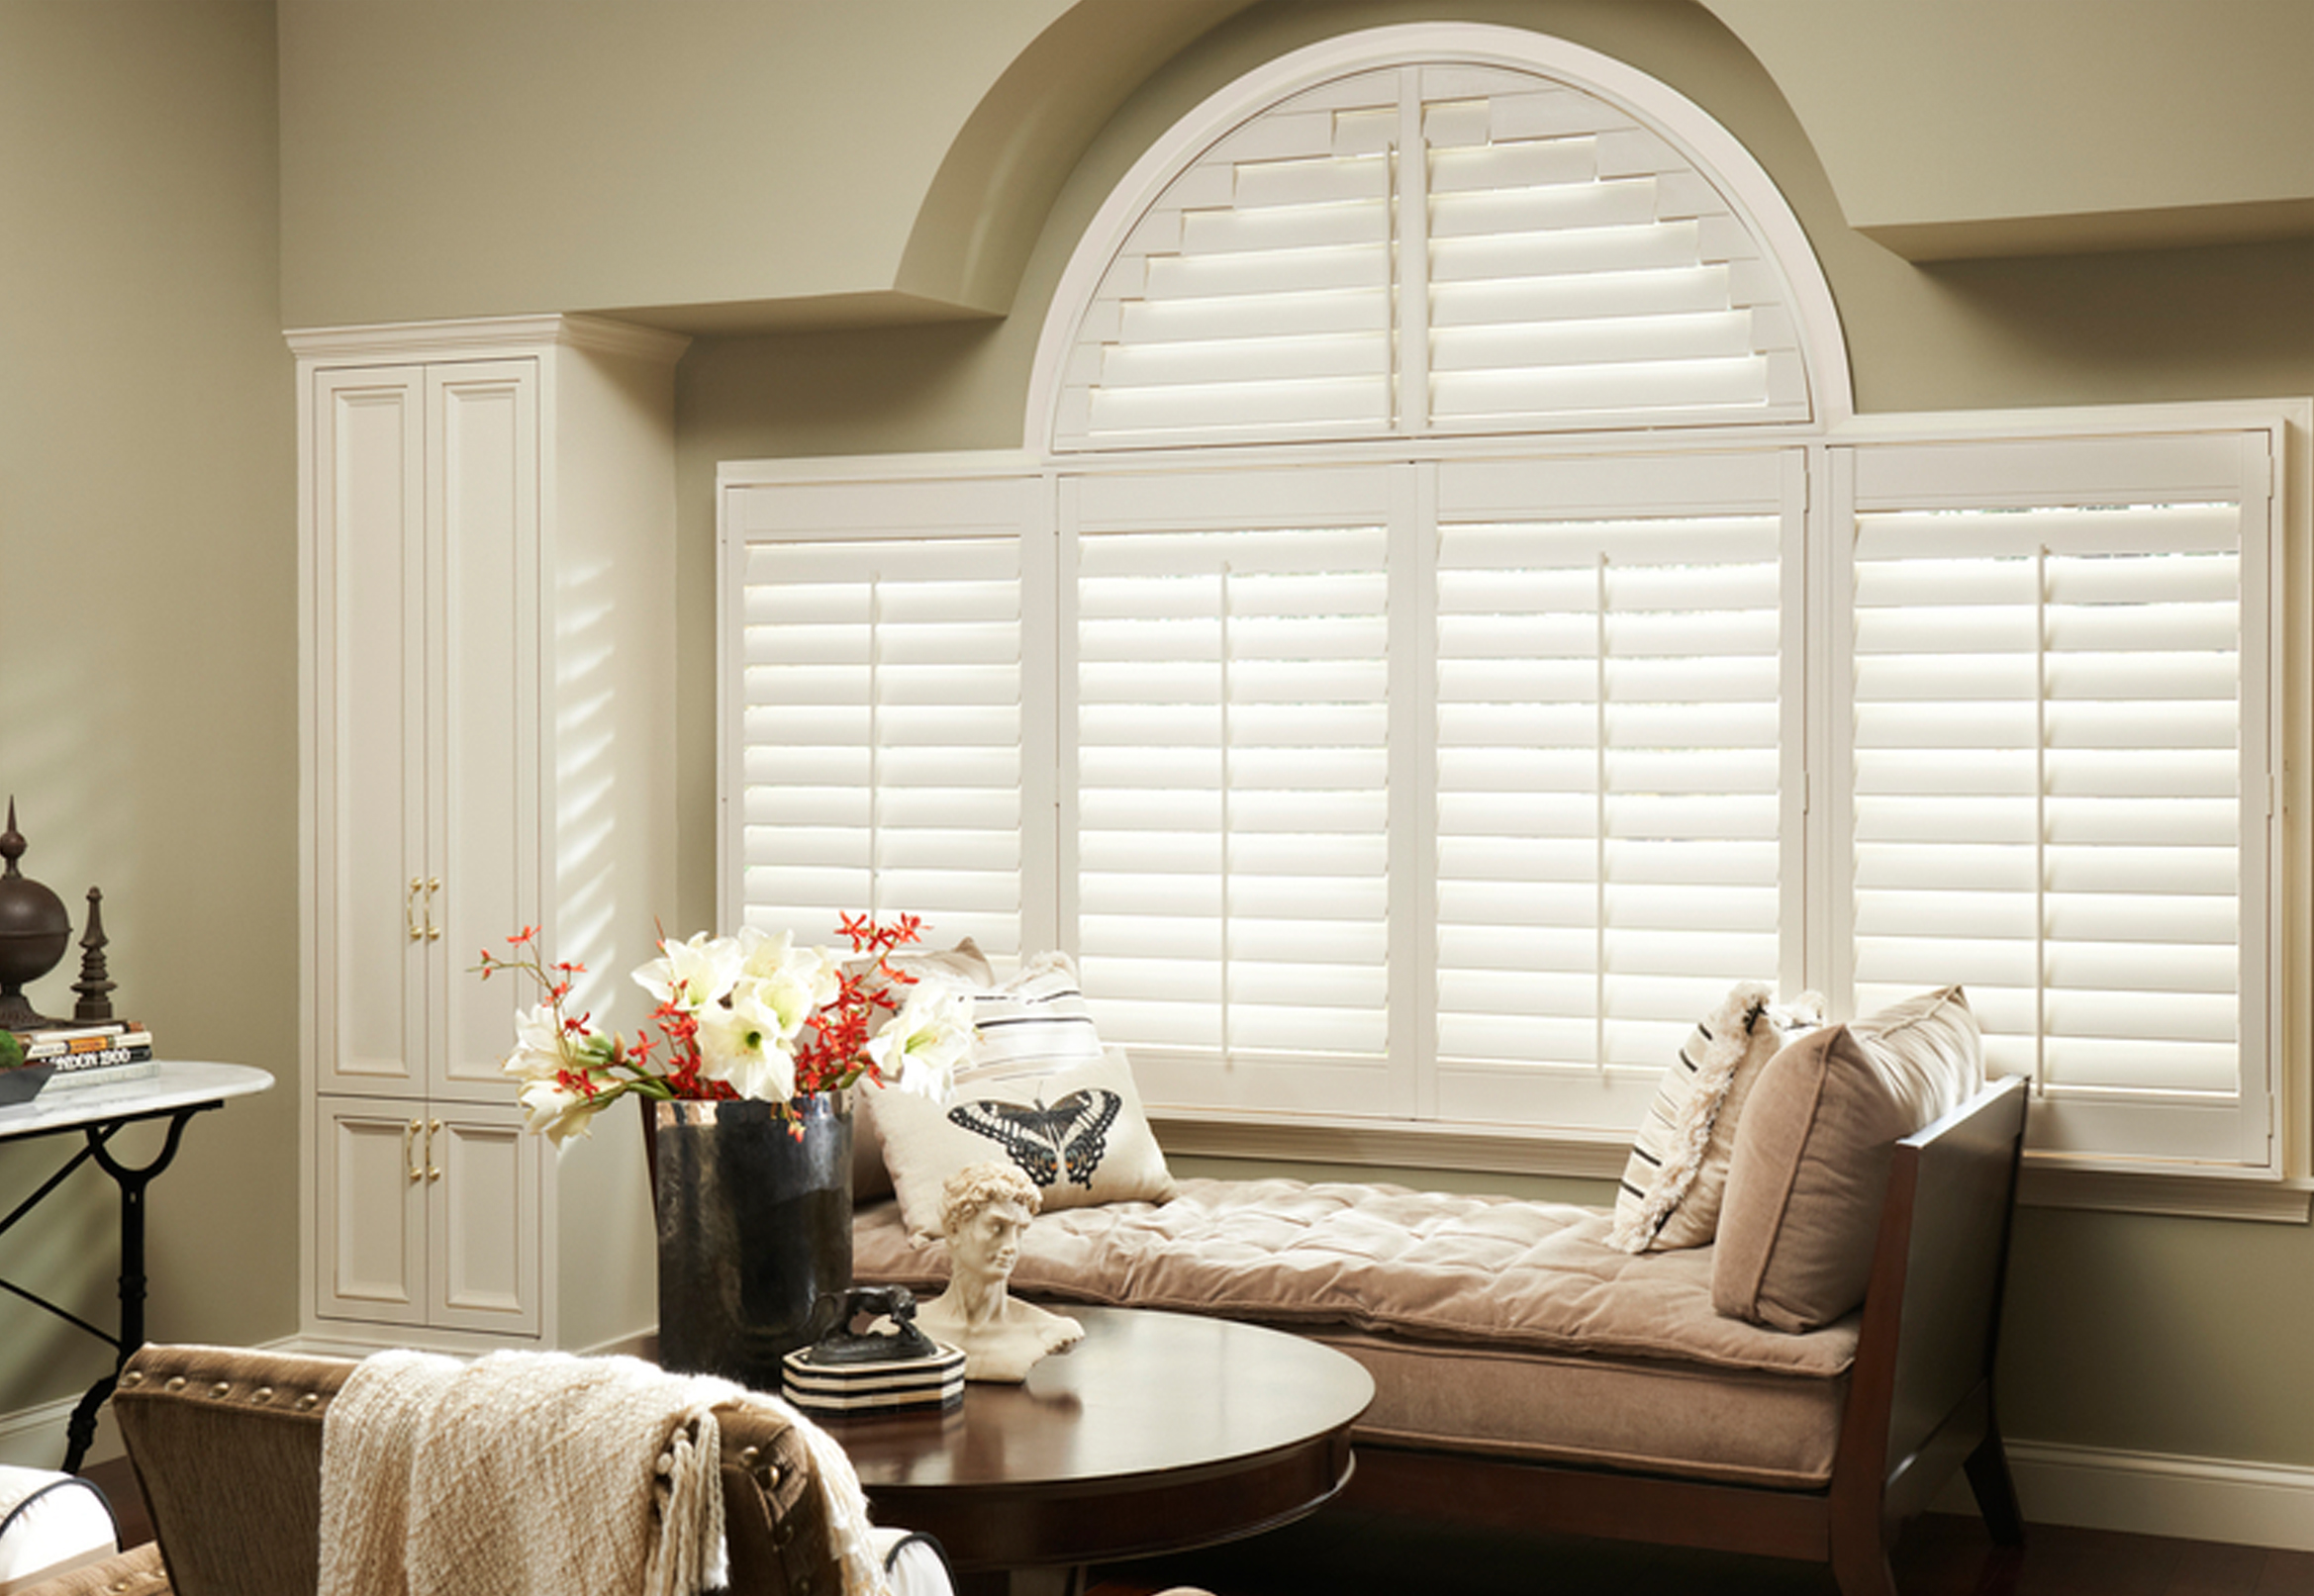 Custom shutters for the home, drapery and shutters in Nashville, TN, Franklin, TN and Brentwood, TN, window coverings at Blinds & Designs.